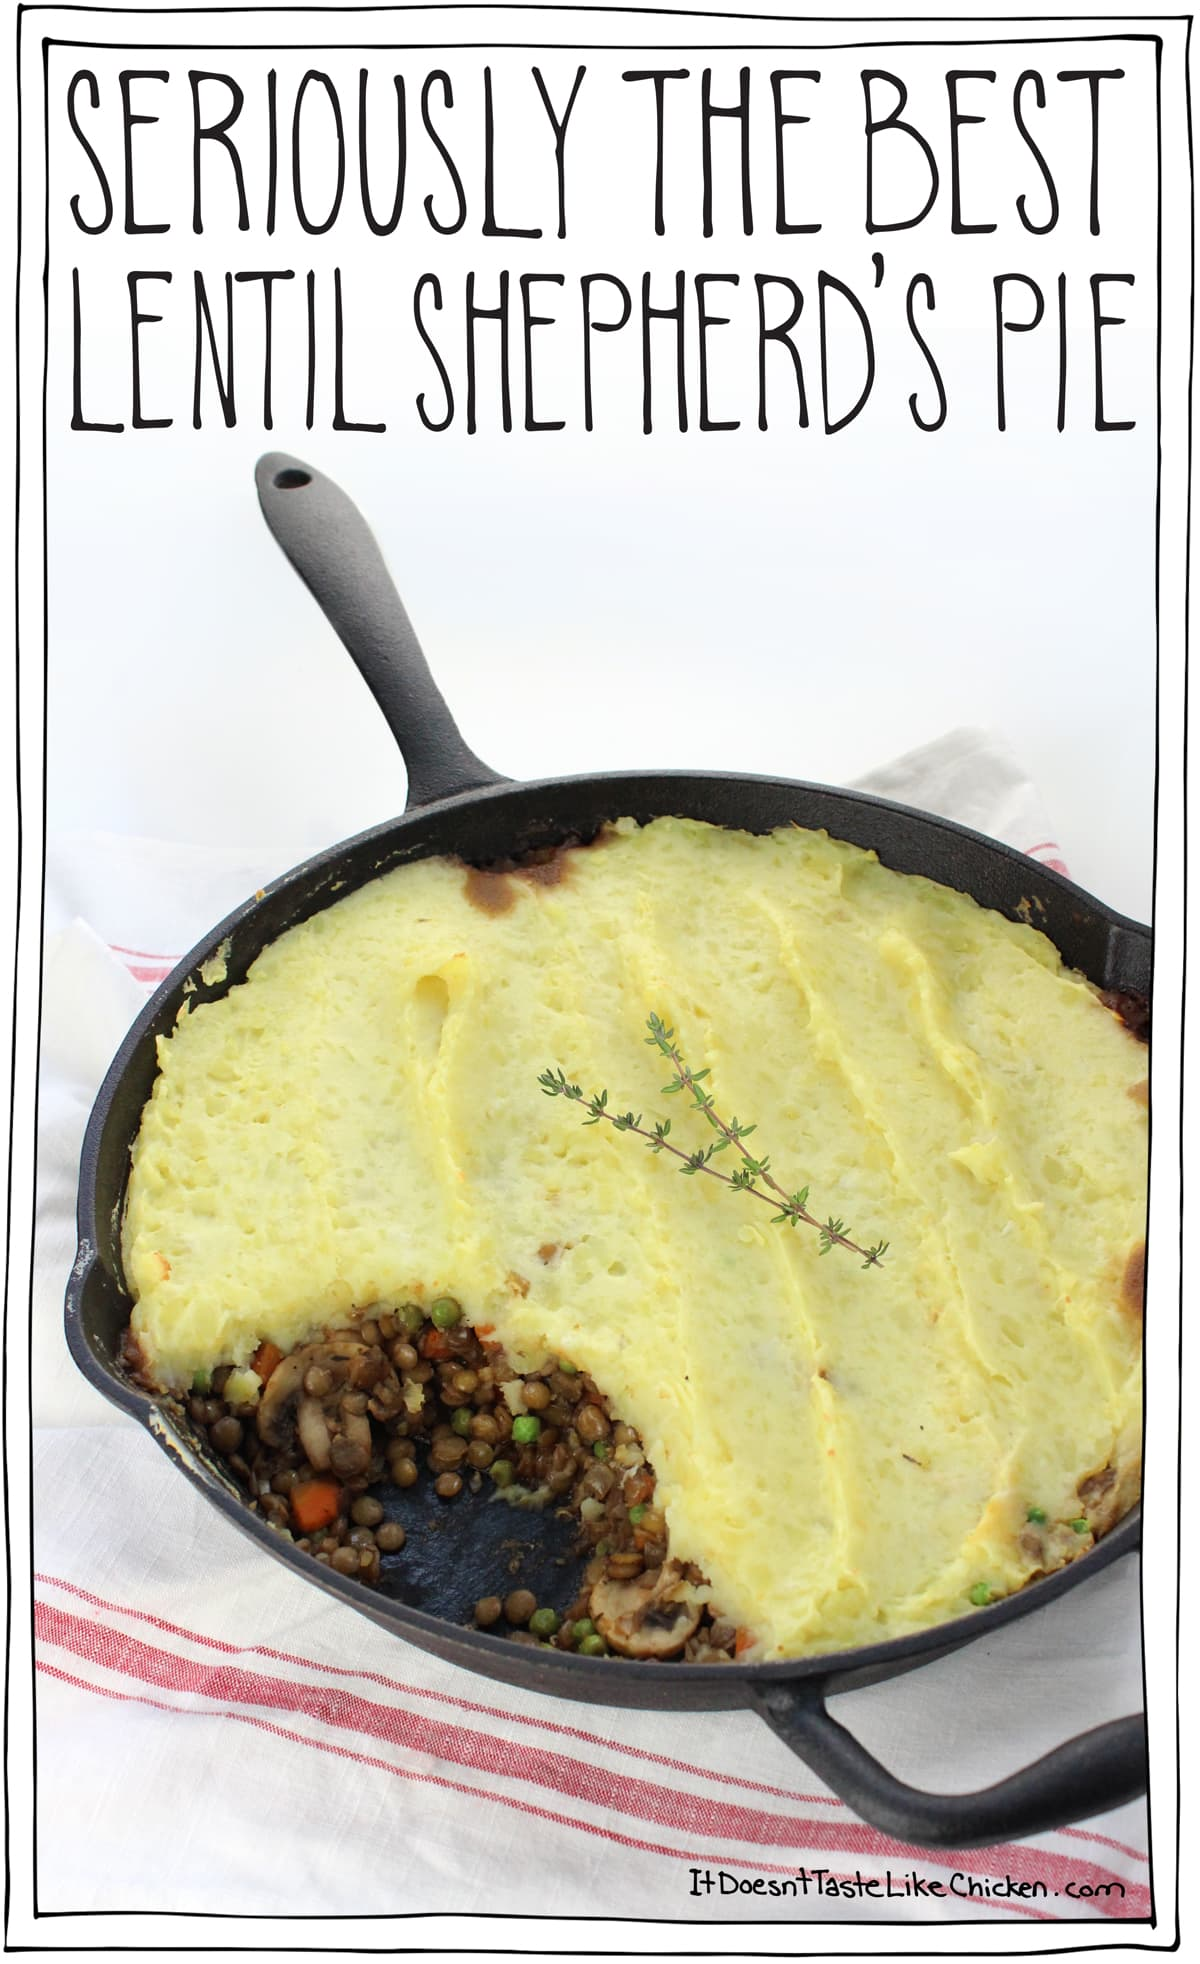 Seriously the Best Lentil Shepherd's Pie. Perfect for the holidays or a hearty weekend meal. The garlic mashed potatoes take this from ordinary to extraordinary! Can be made ahead of time and reheated. Vegetarian, vegan, gluten free. #itdoesnttastelikechicken